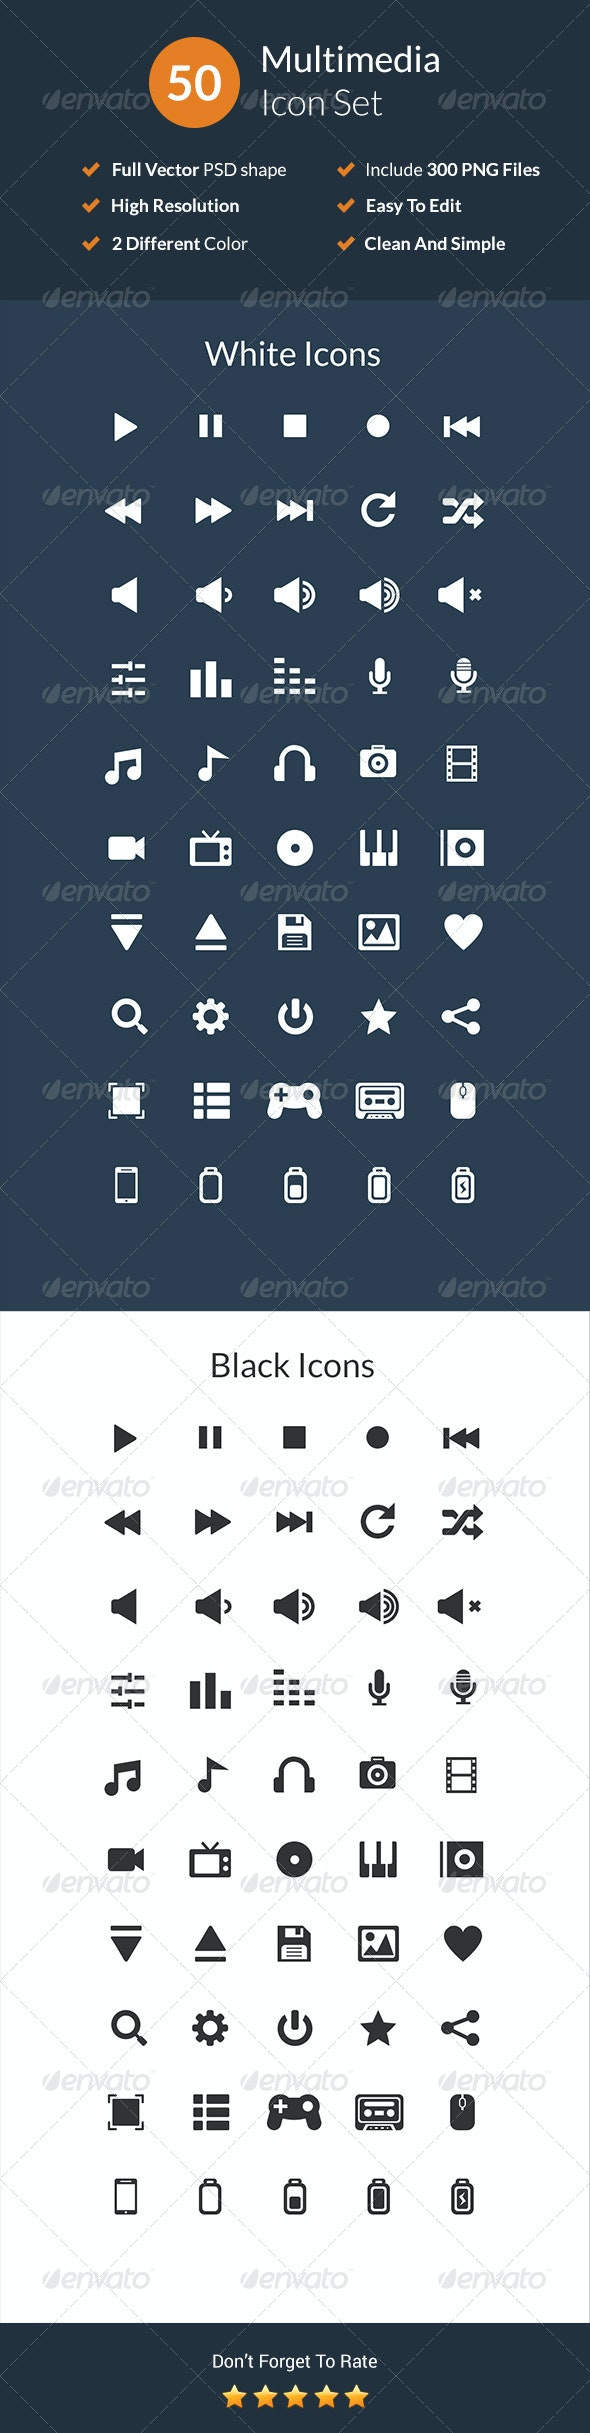 50 Multimedia Icon Set - Media Icons